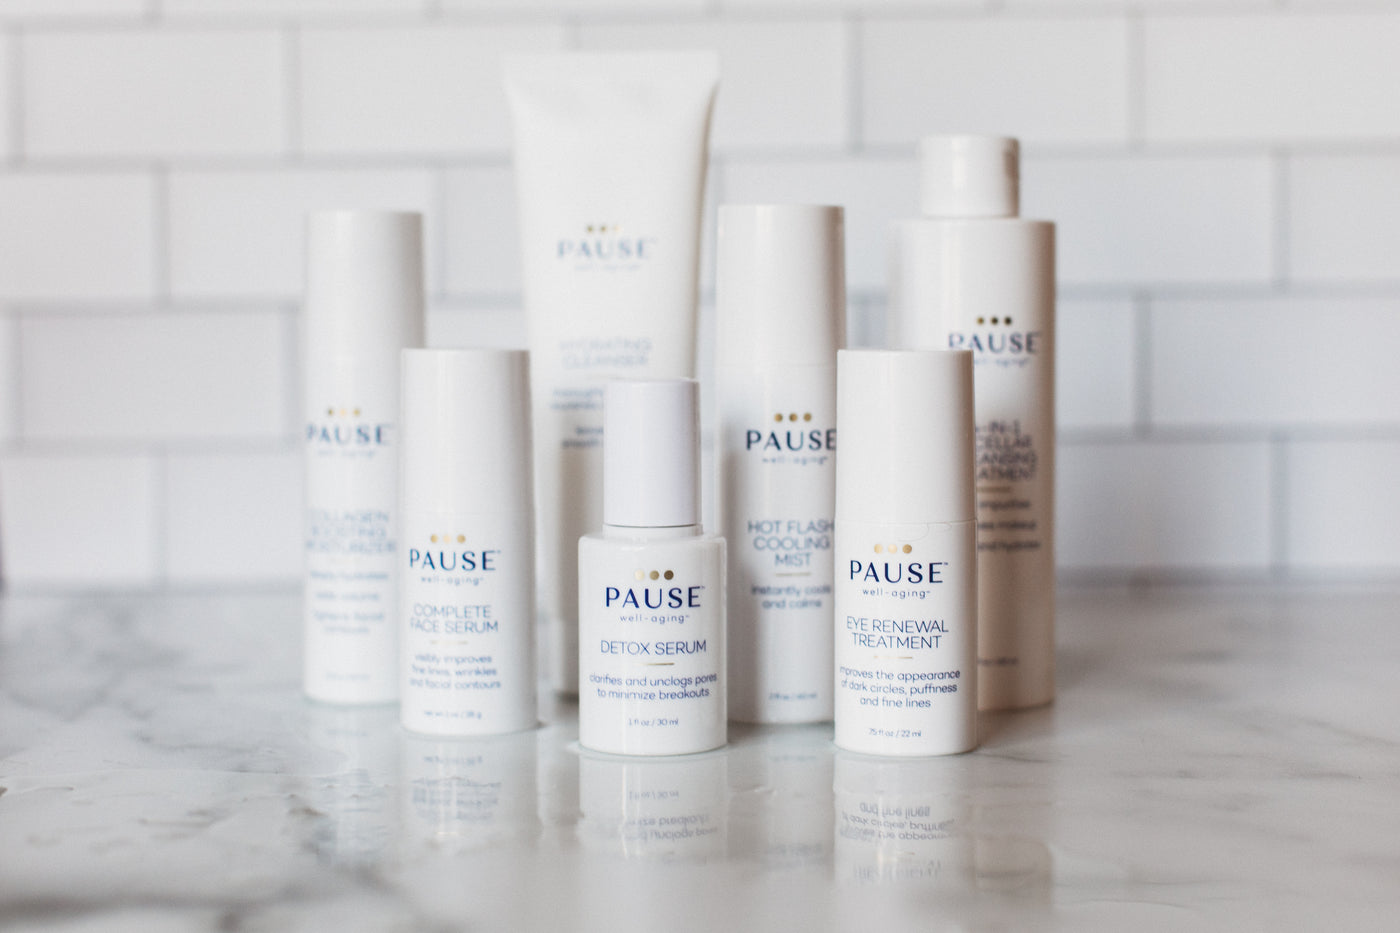 Pause Well Aging Hero Image on the FAQ page showing the full PAUSE skincare collection